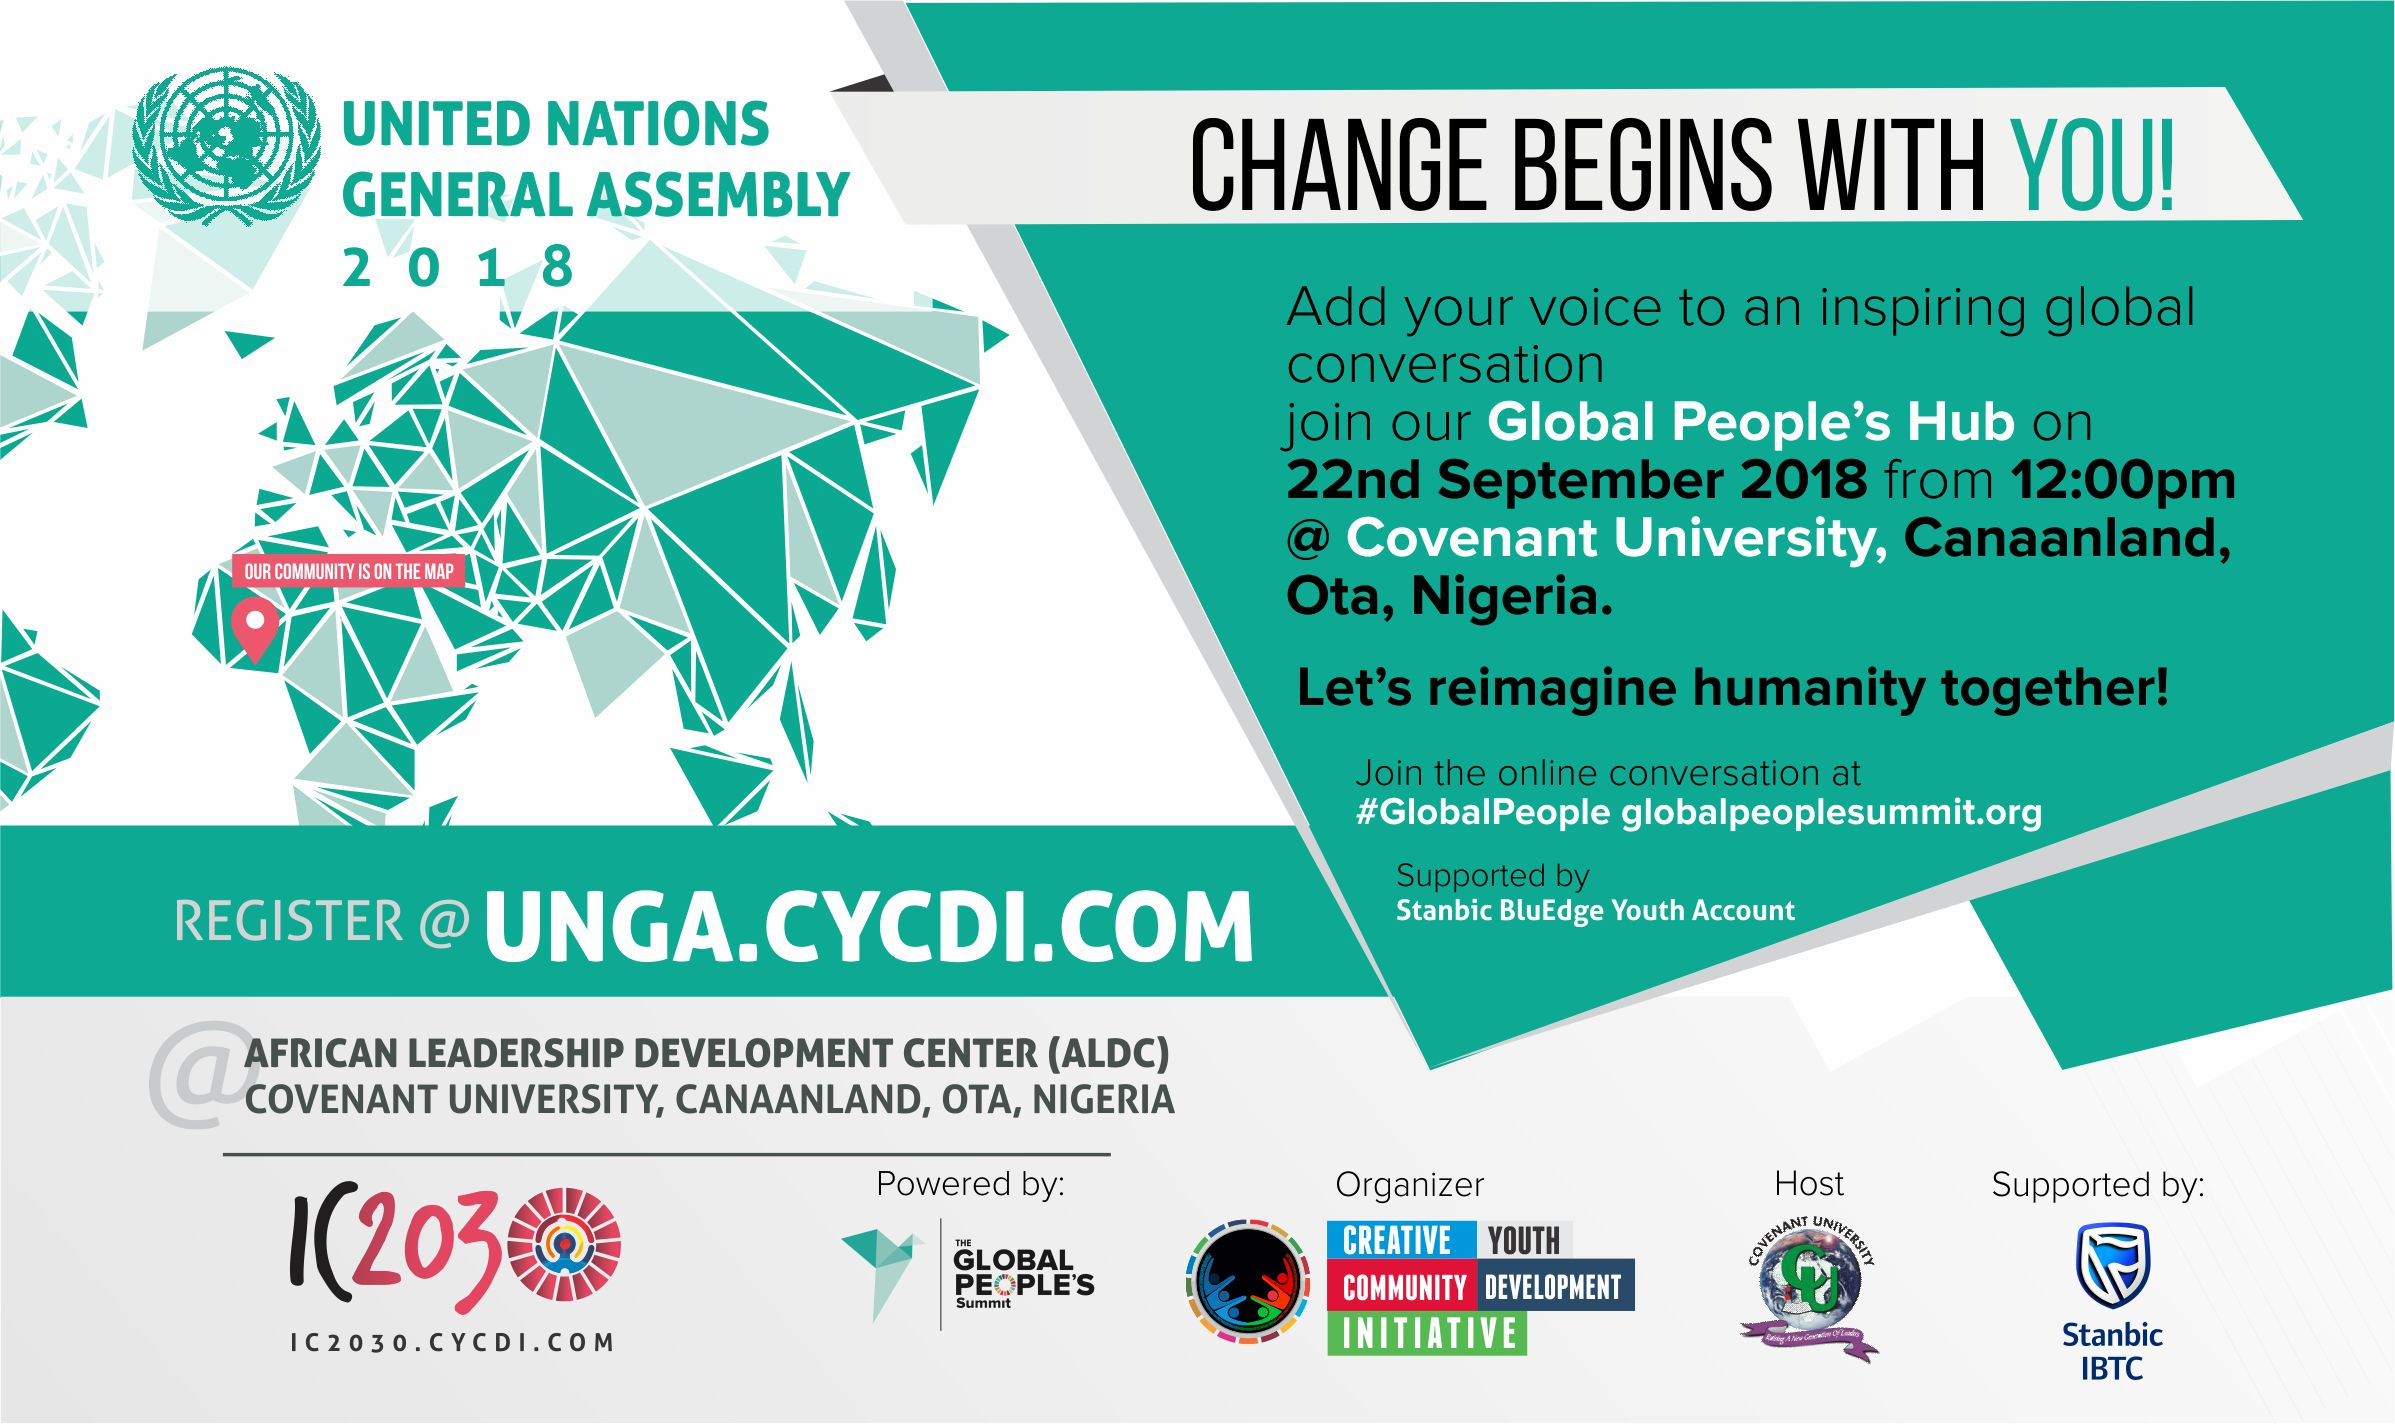 Global People's Summit, CYCDI partners Covenant University to give the University Community a seat at the table during the United Nations General Assembly.